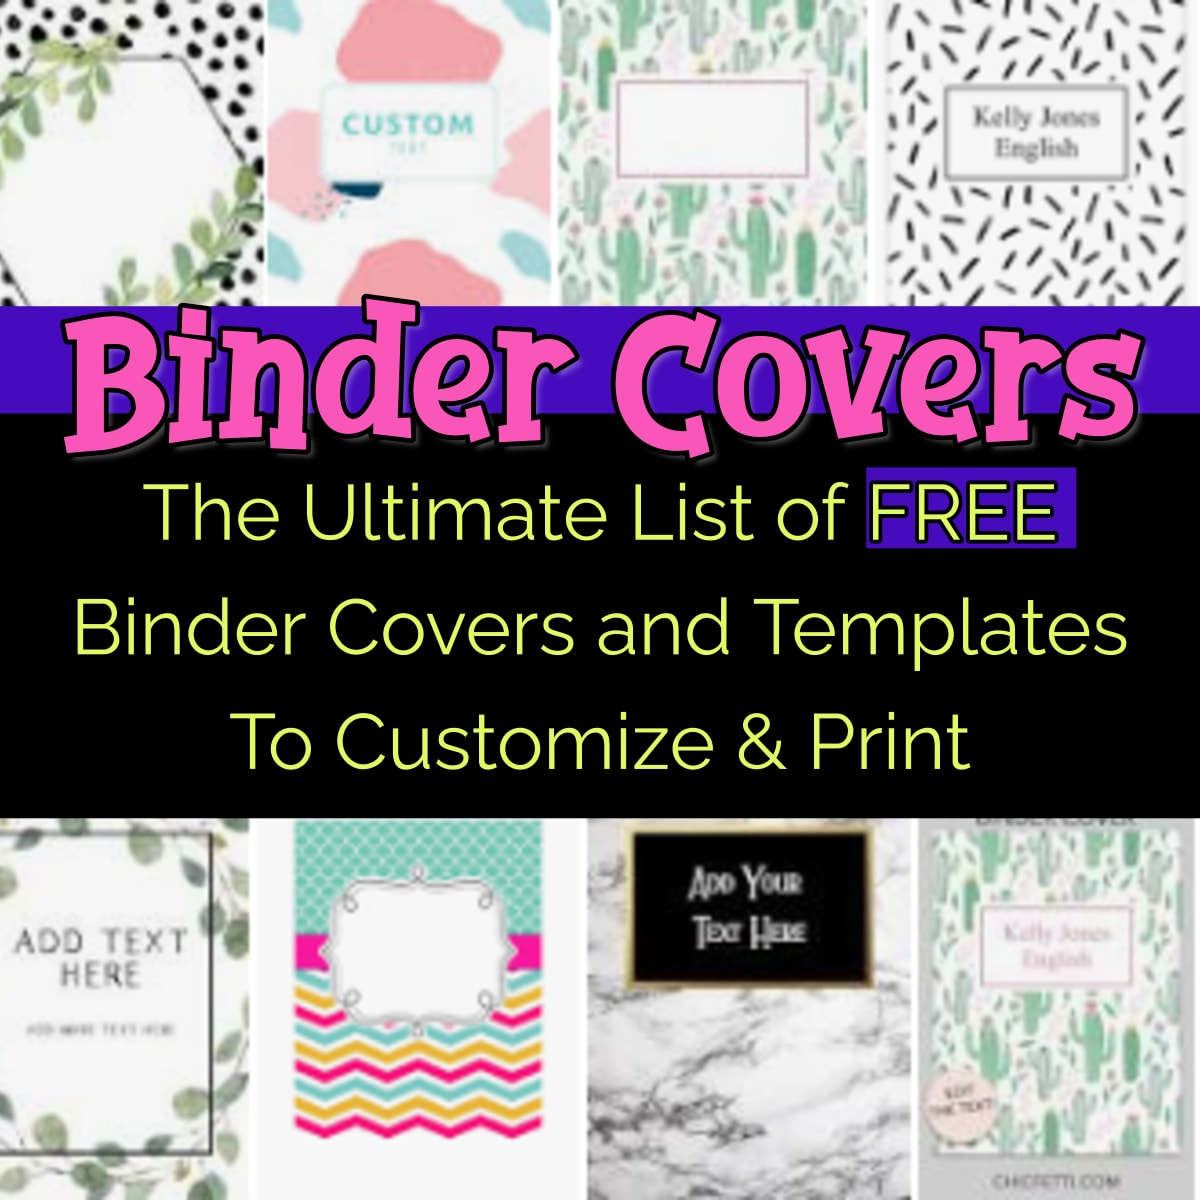 Binder Covers-Free Printable Binder Covers and Templates to Print - Binder Covers for school, Cute Binder Covers, Editable Binder Covers DIY, Black and White, Simple Professional and Business, binder covers for teachers and more free printable binder covers